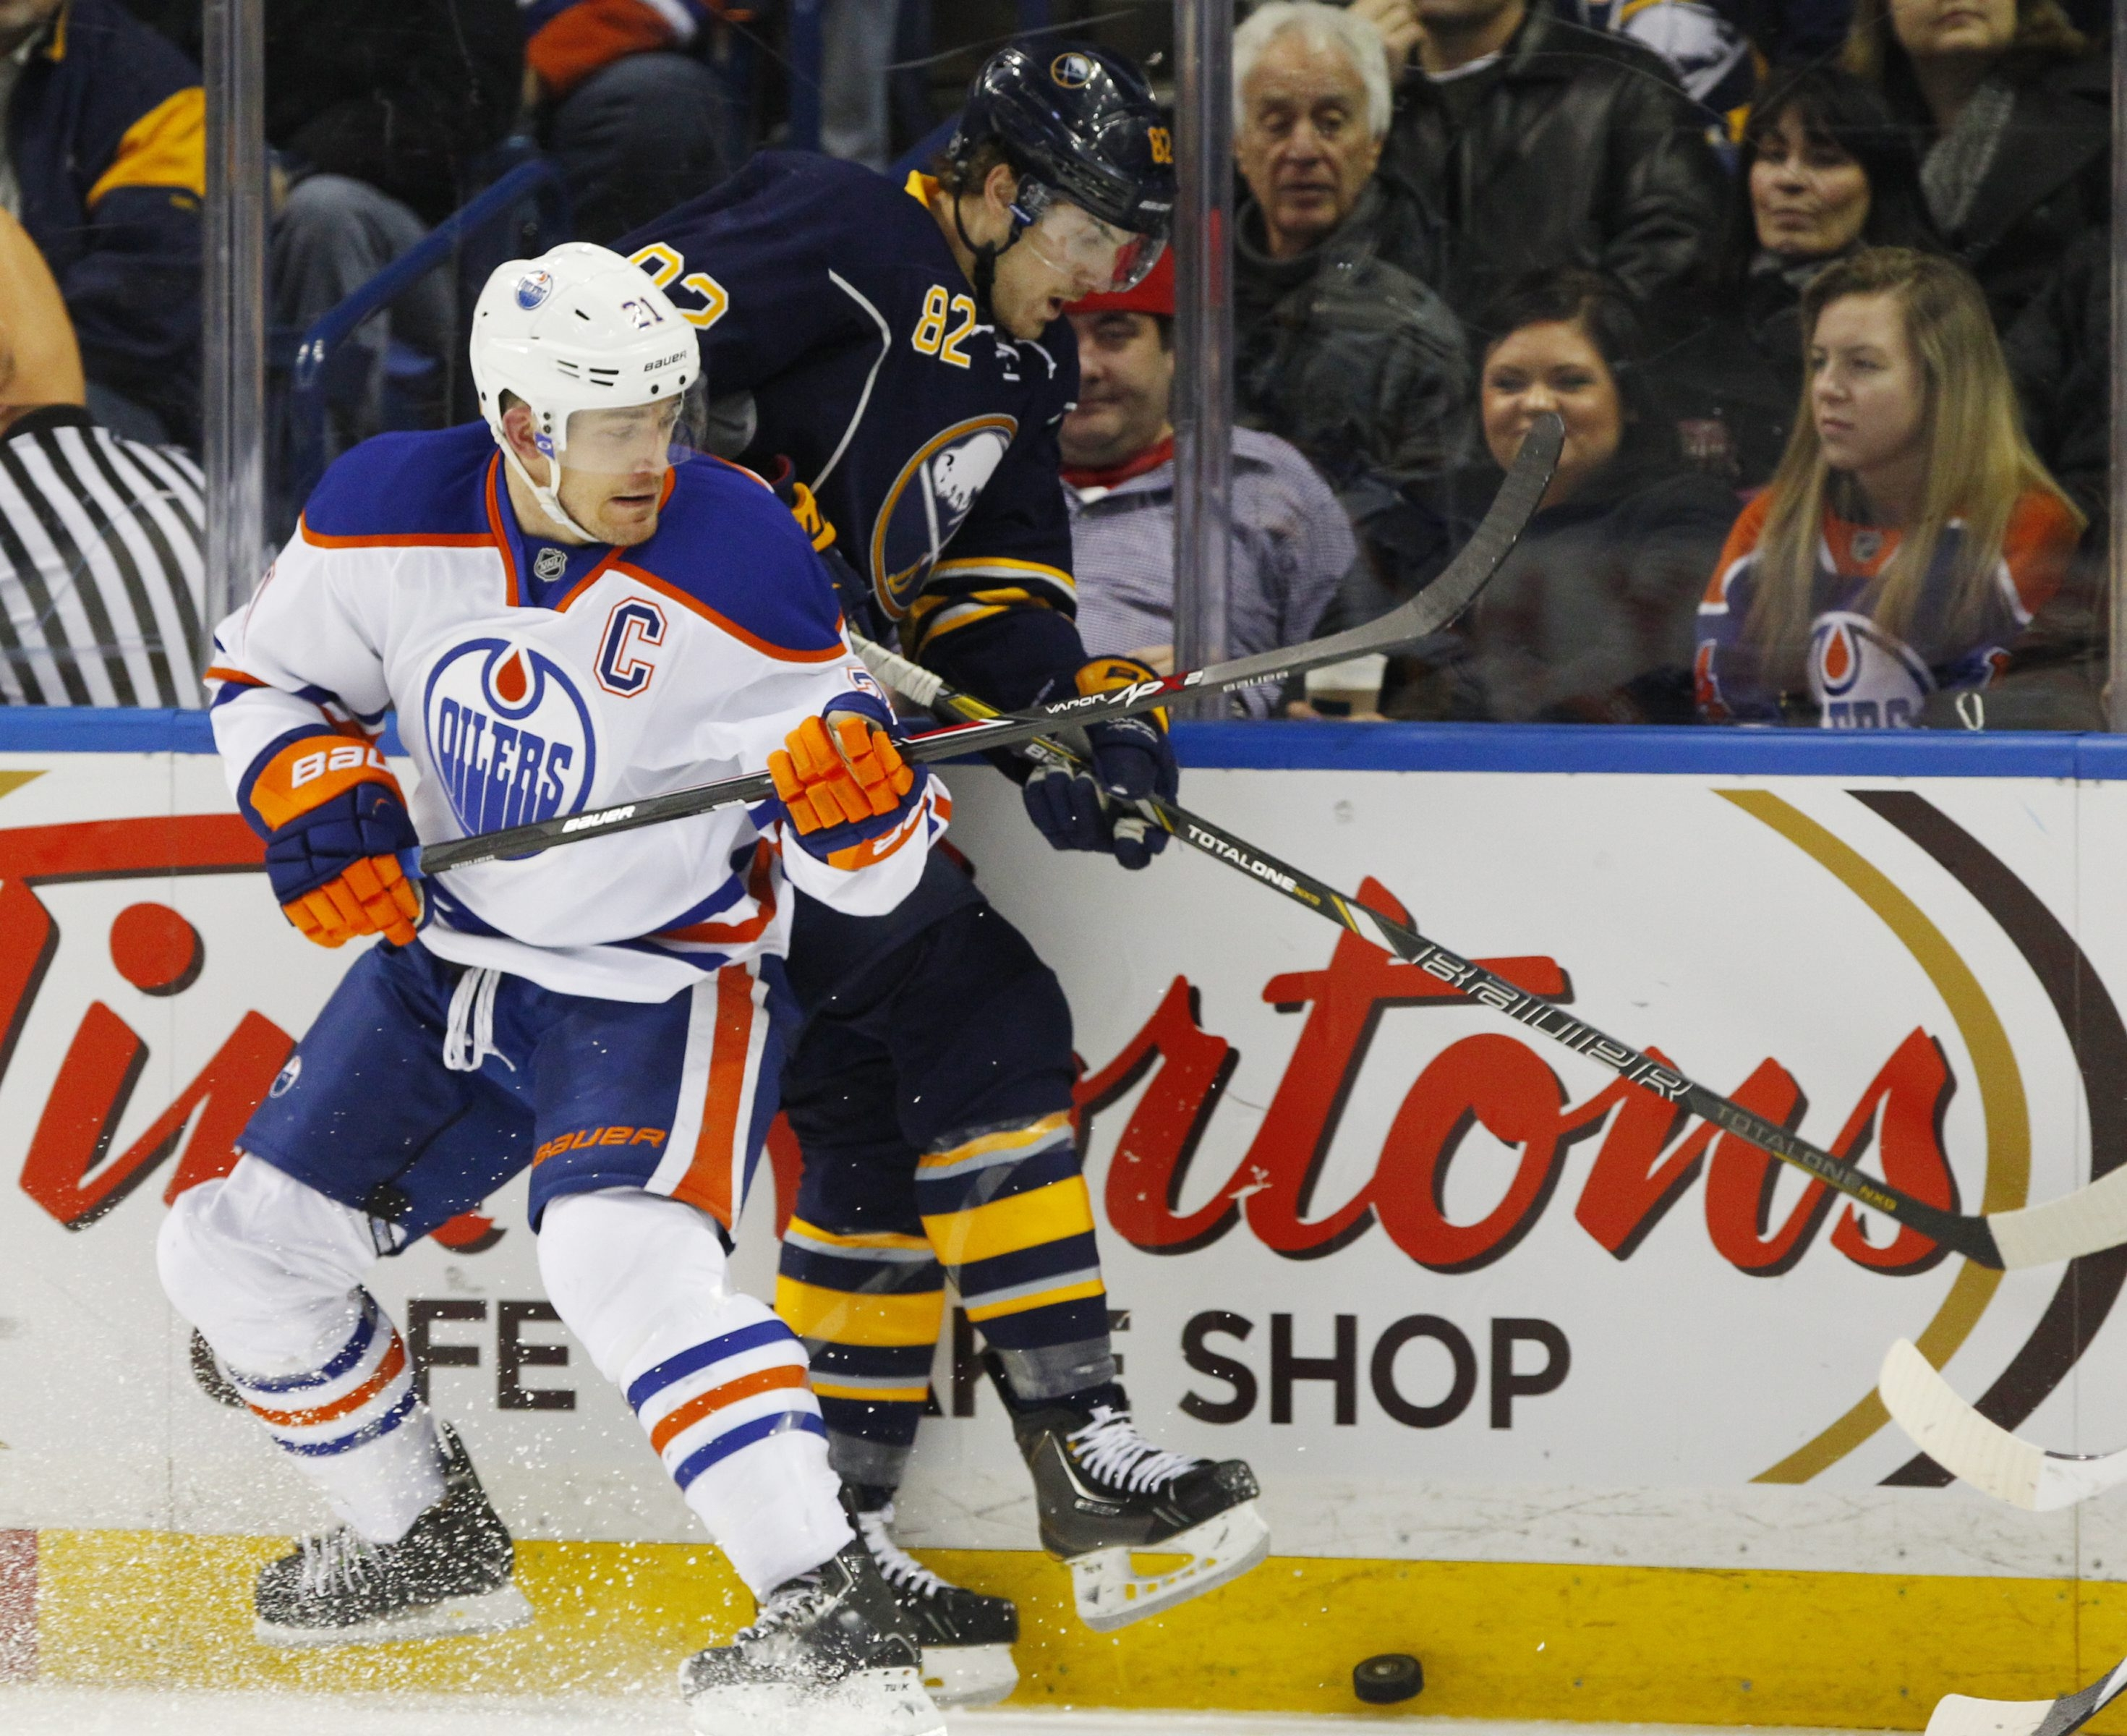 Buffalo's Marcus Foligno (82) and Edmonton's Andrew Ference (21) battle for a puck.